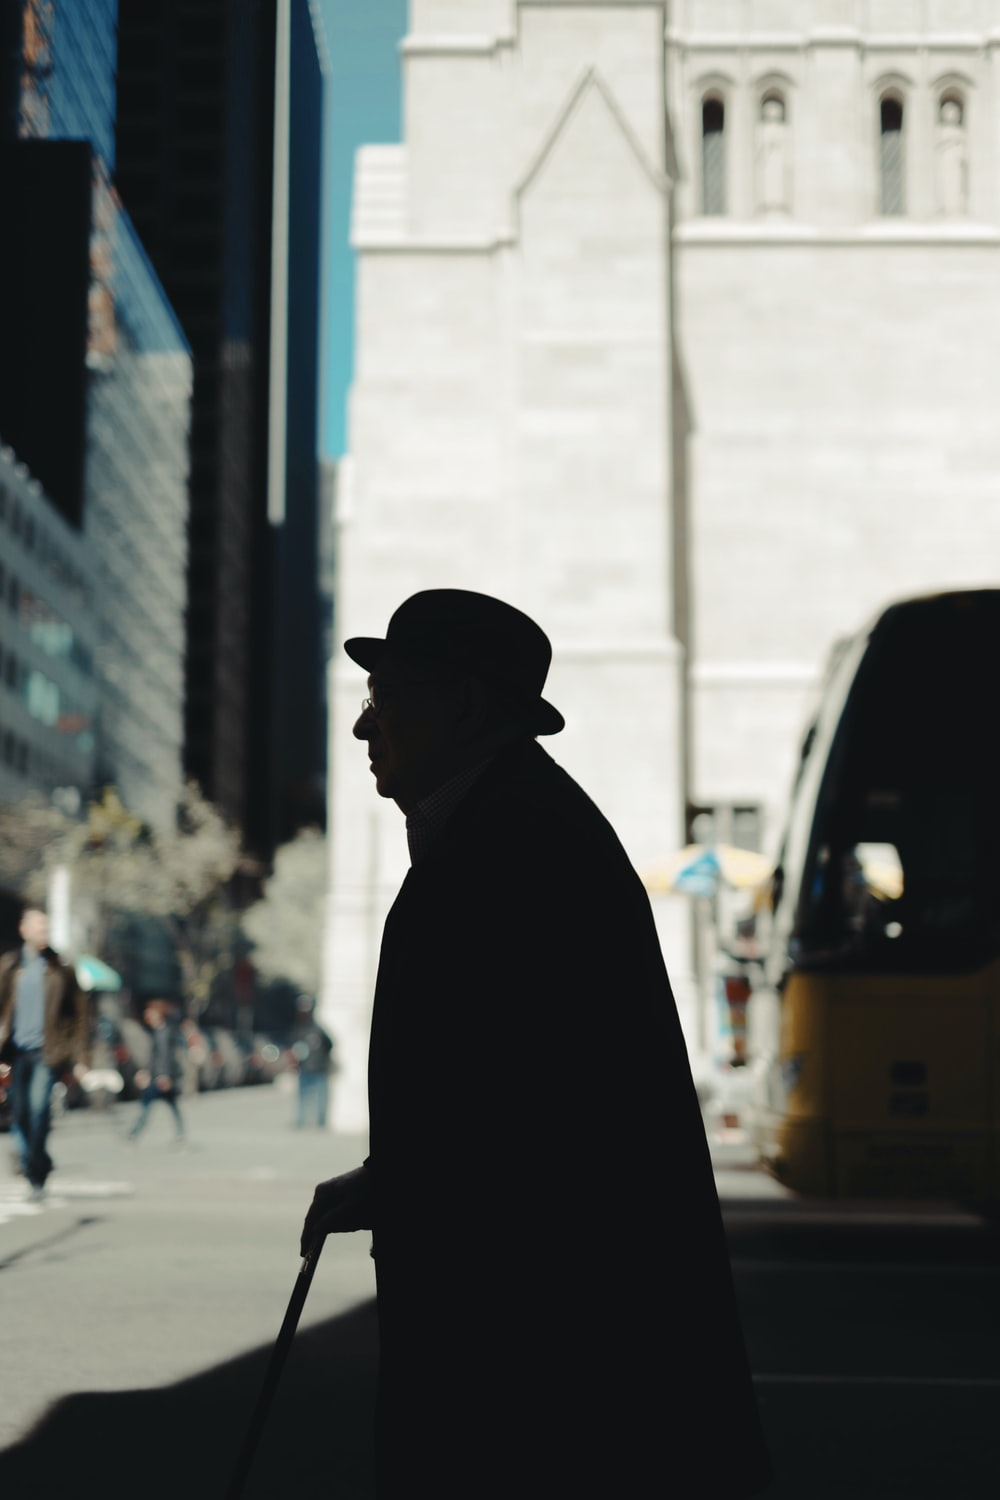 silhouette of man holding walking cane on road during daytime